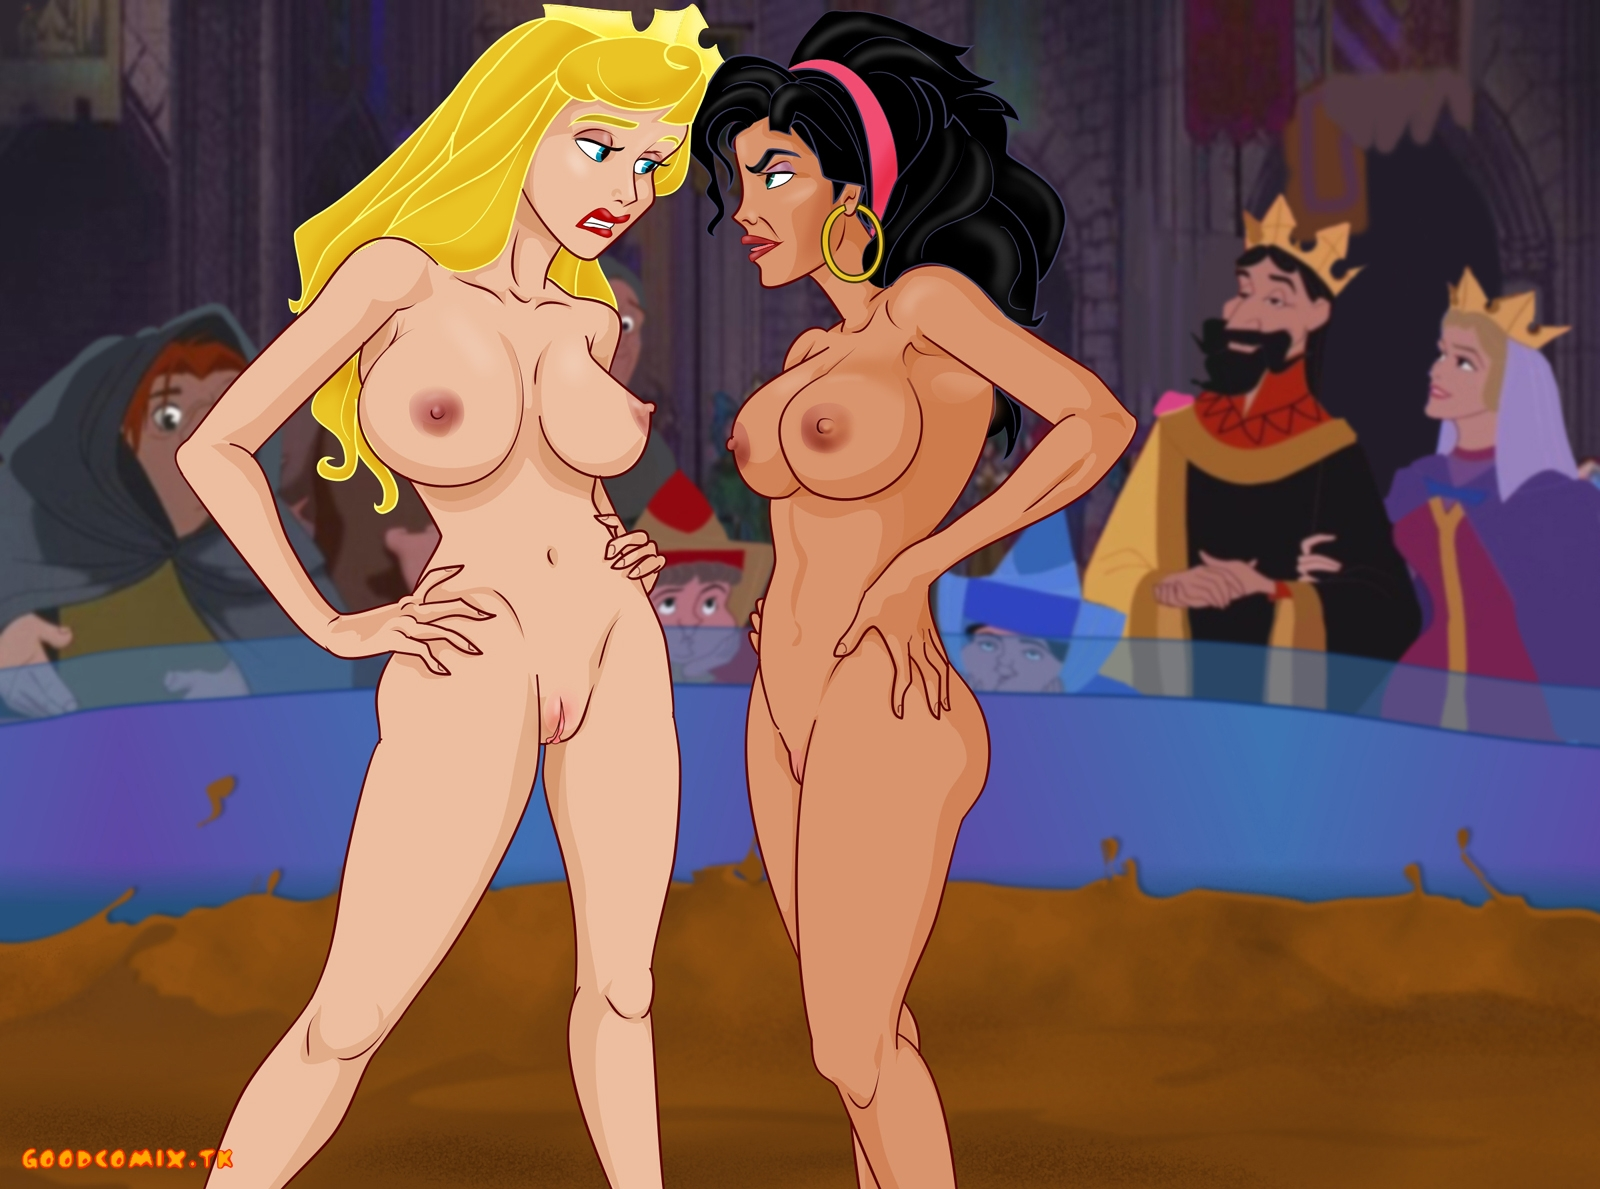 Goodcomix The Hunchback of Notre-Dame - Sleeping Beauty - [XL-Toons] - Aurora VS Esmeralda xxx porno